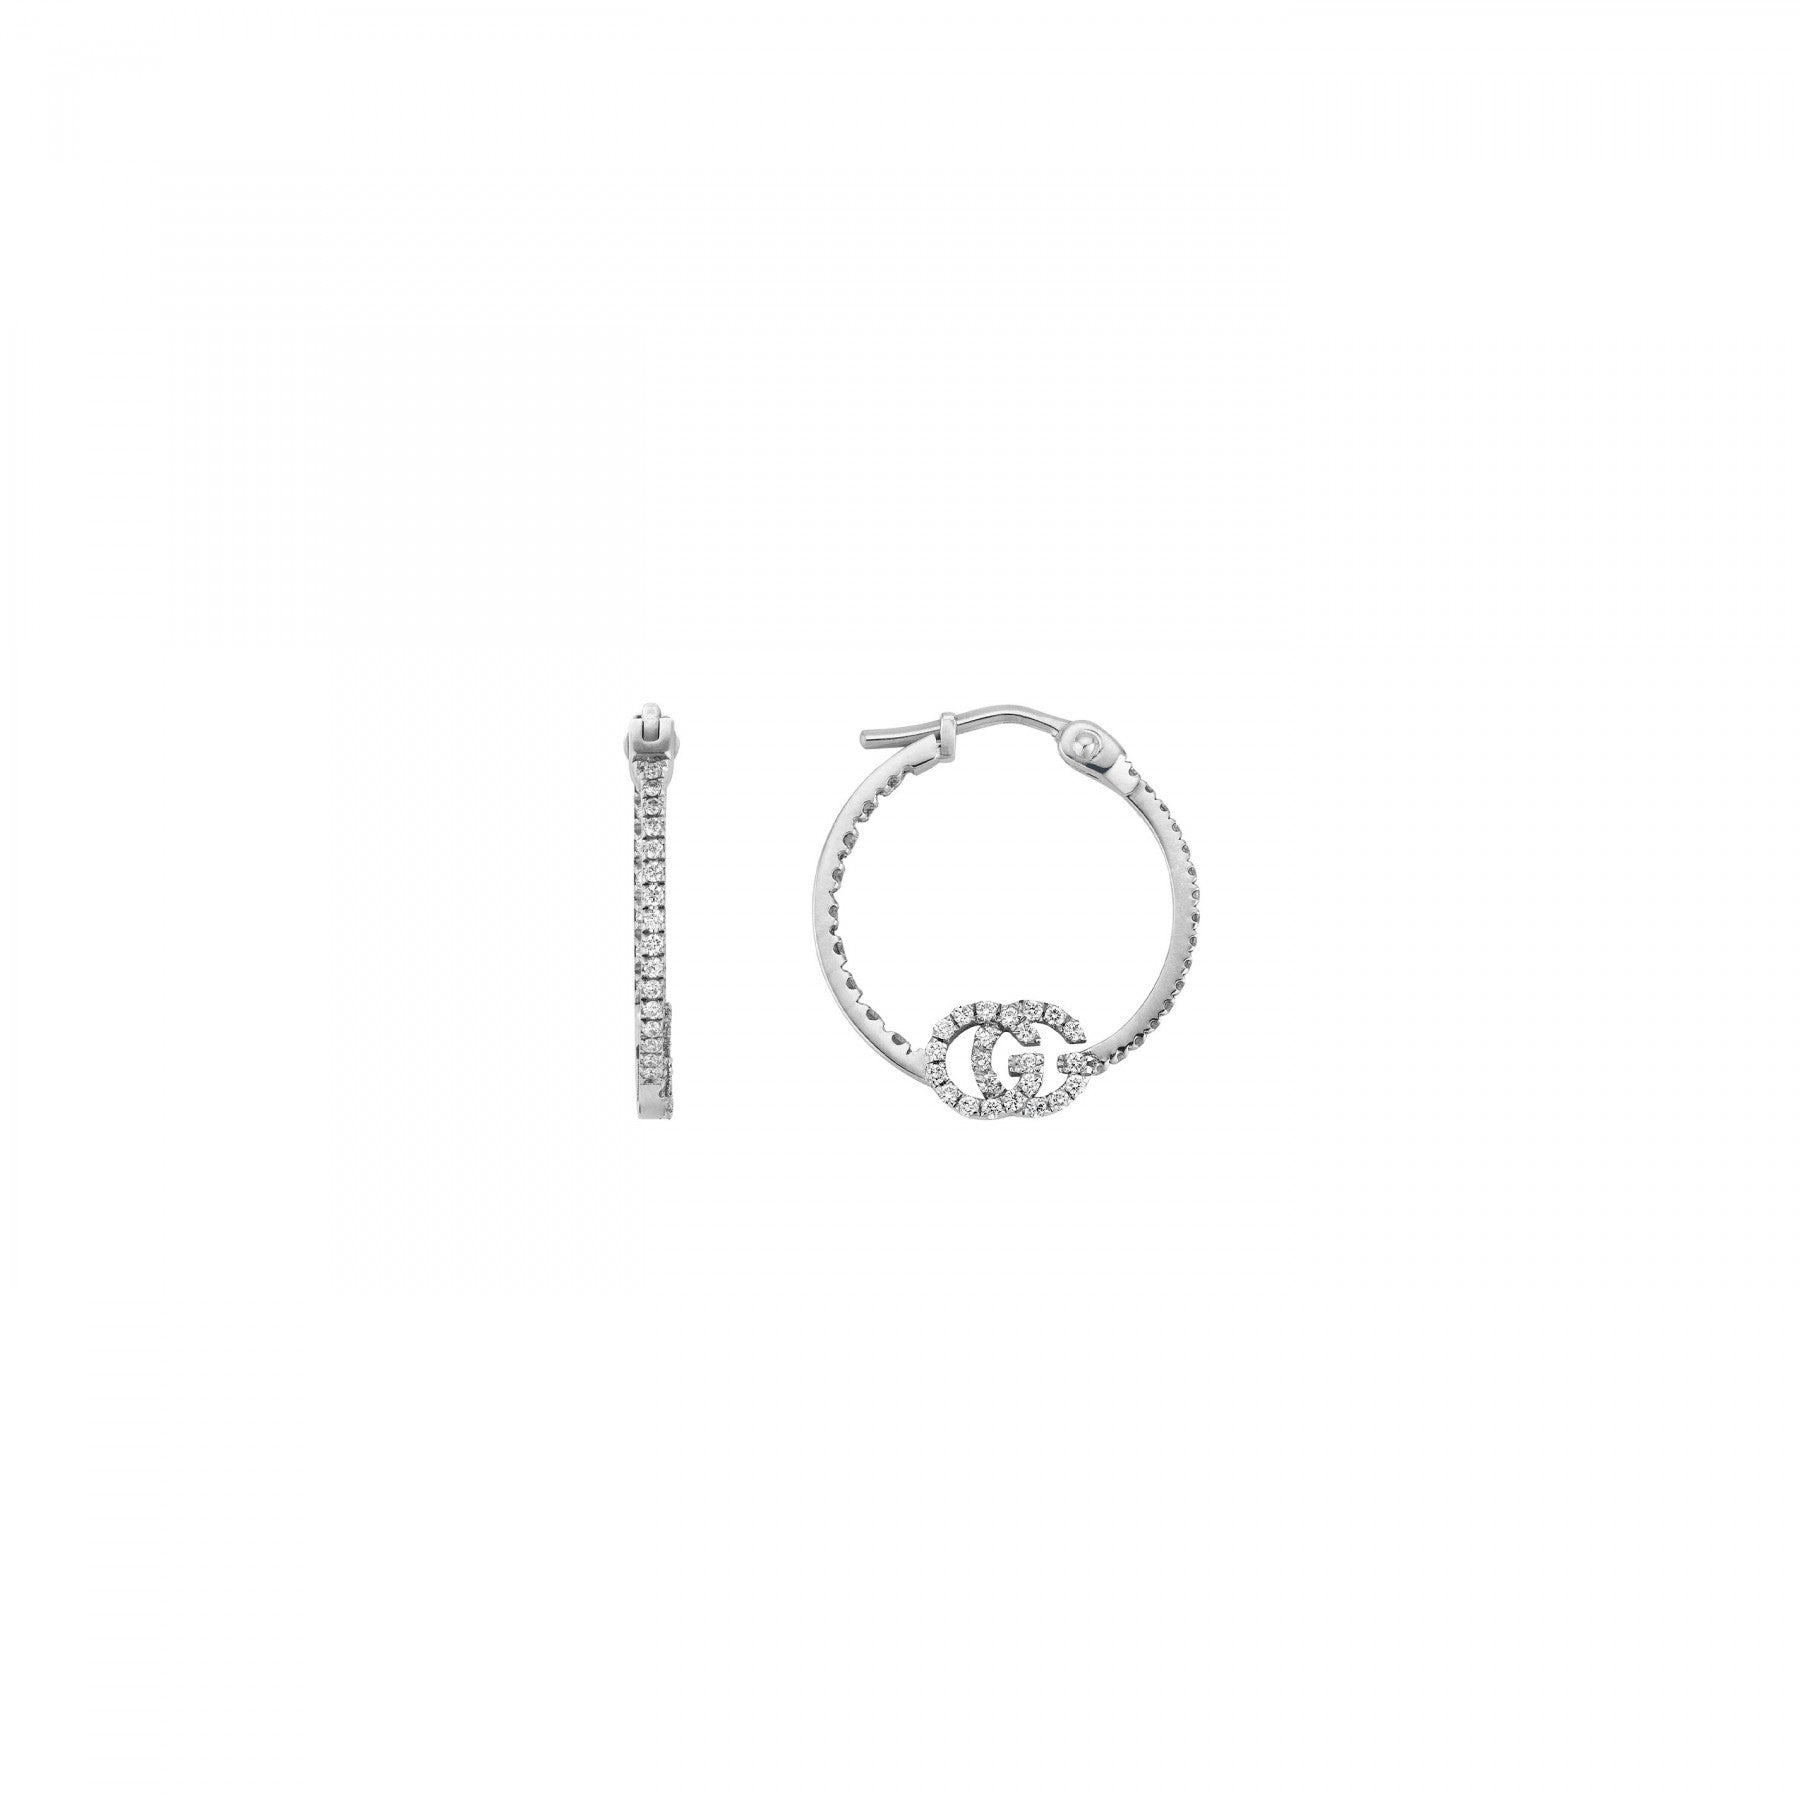 Gucci GG Running Hoop Earrings in 18K White Gold with Diamonds - Orsini Jewellers NZ